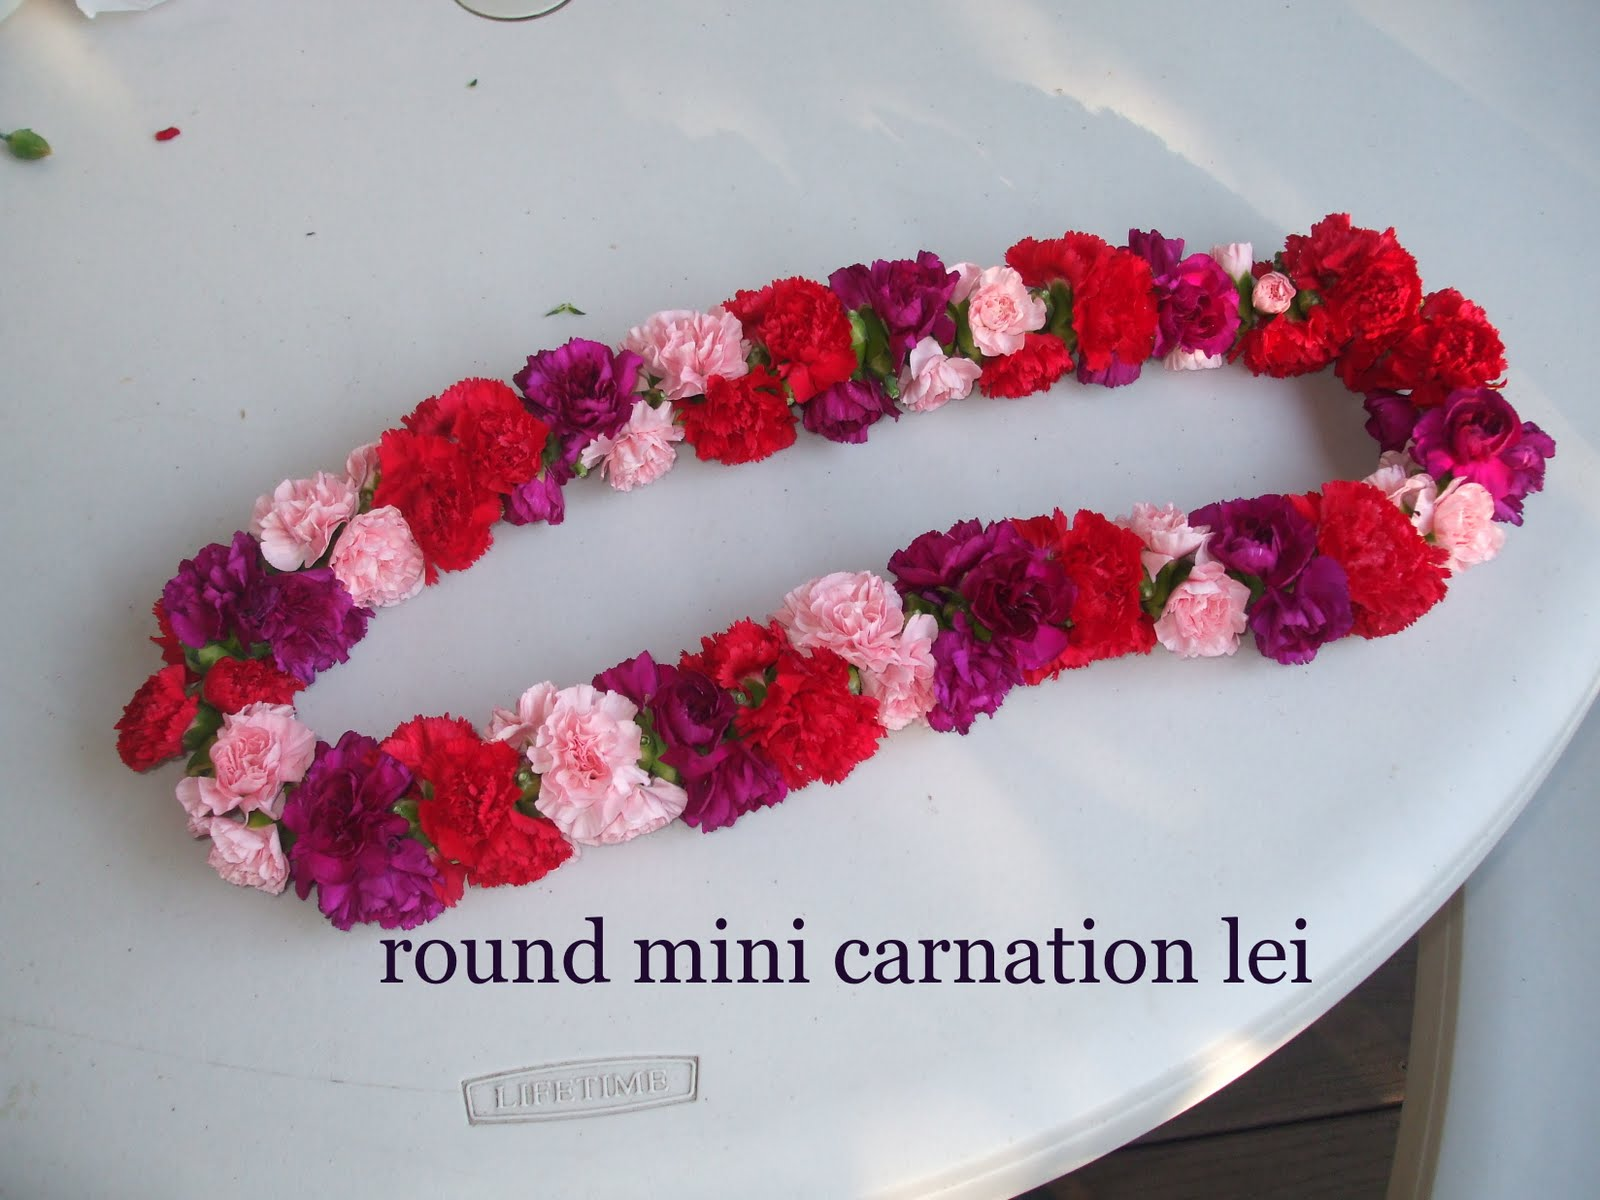 Keiki on board high school graduation now with leis the other problem was that fresh flowers the kind that make good leis arent readily available in oregon but i lucked out with the mini carnation izmirmasajfo